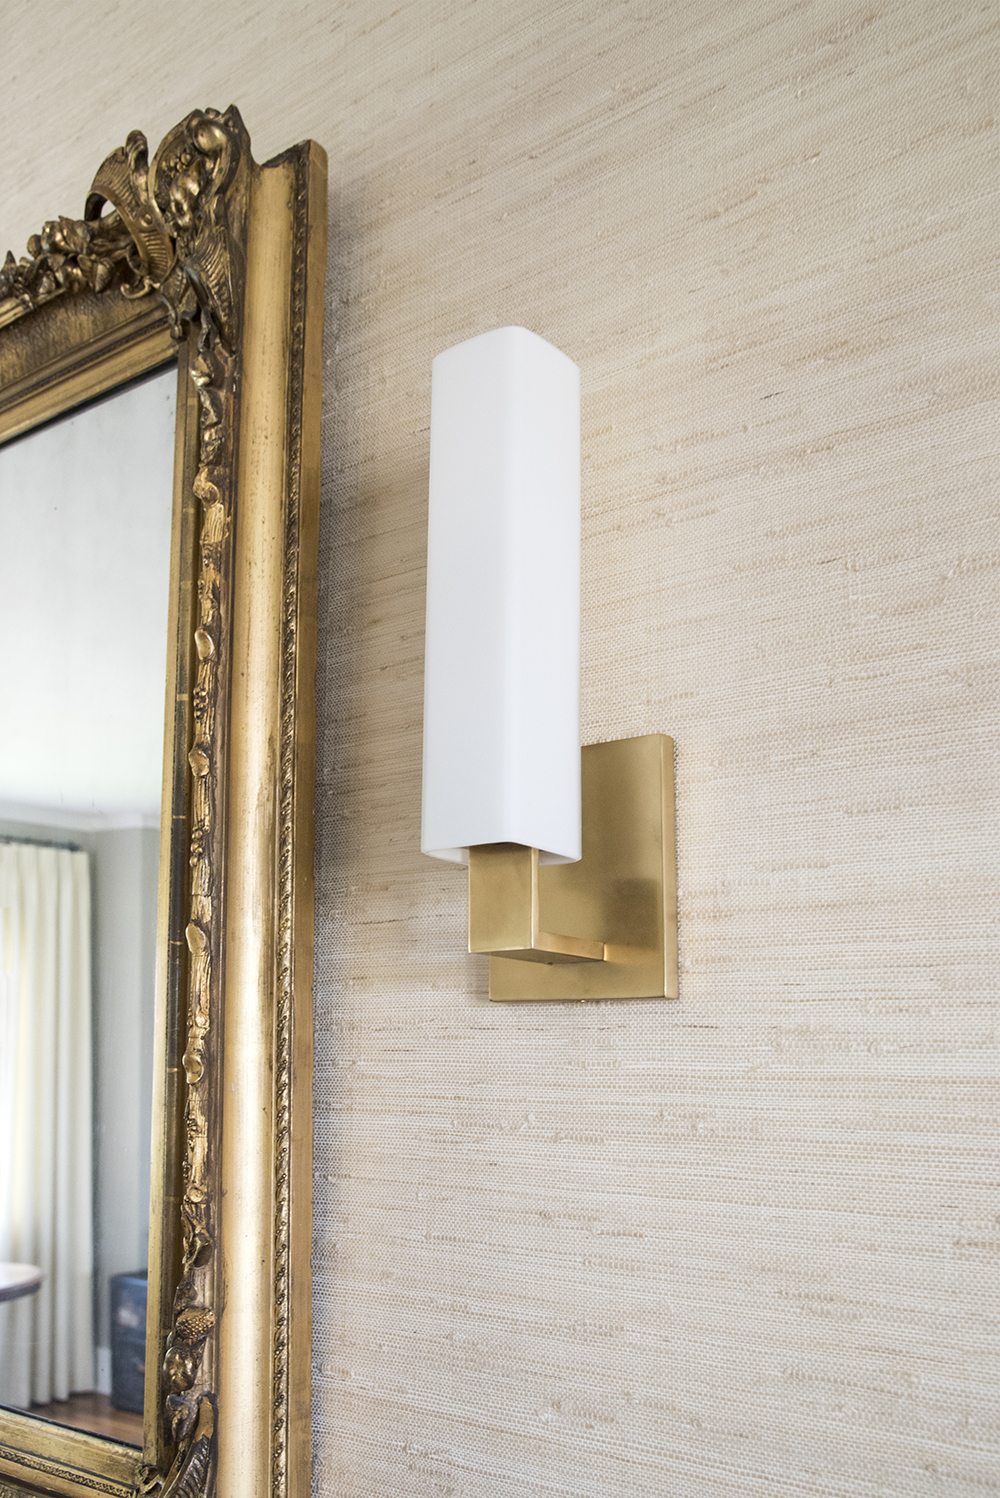 Amazon Finds : The Best Lighting - roomfortuesday.com